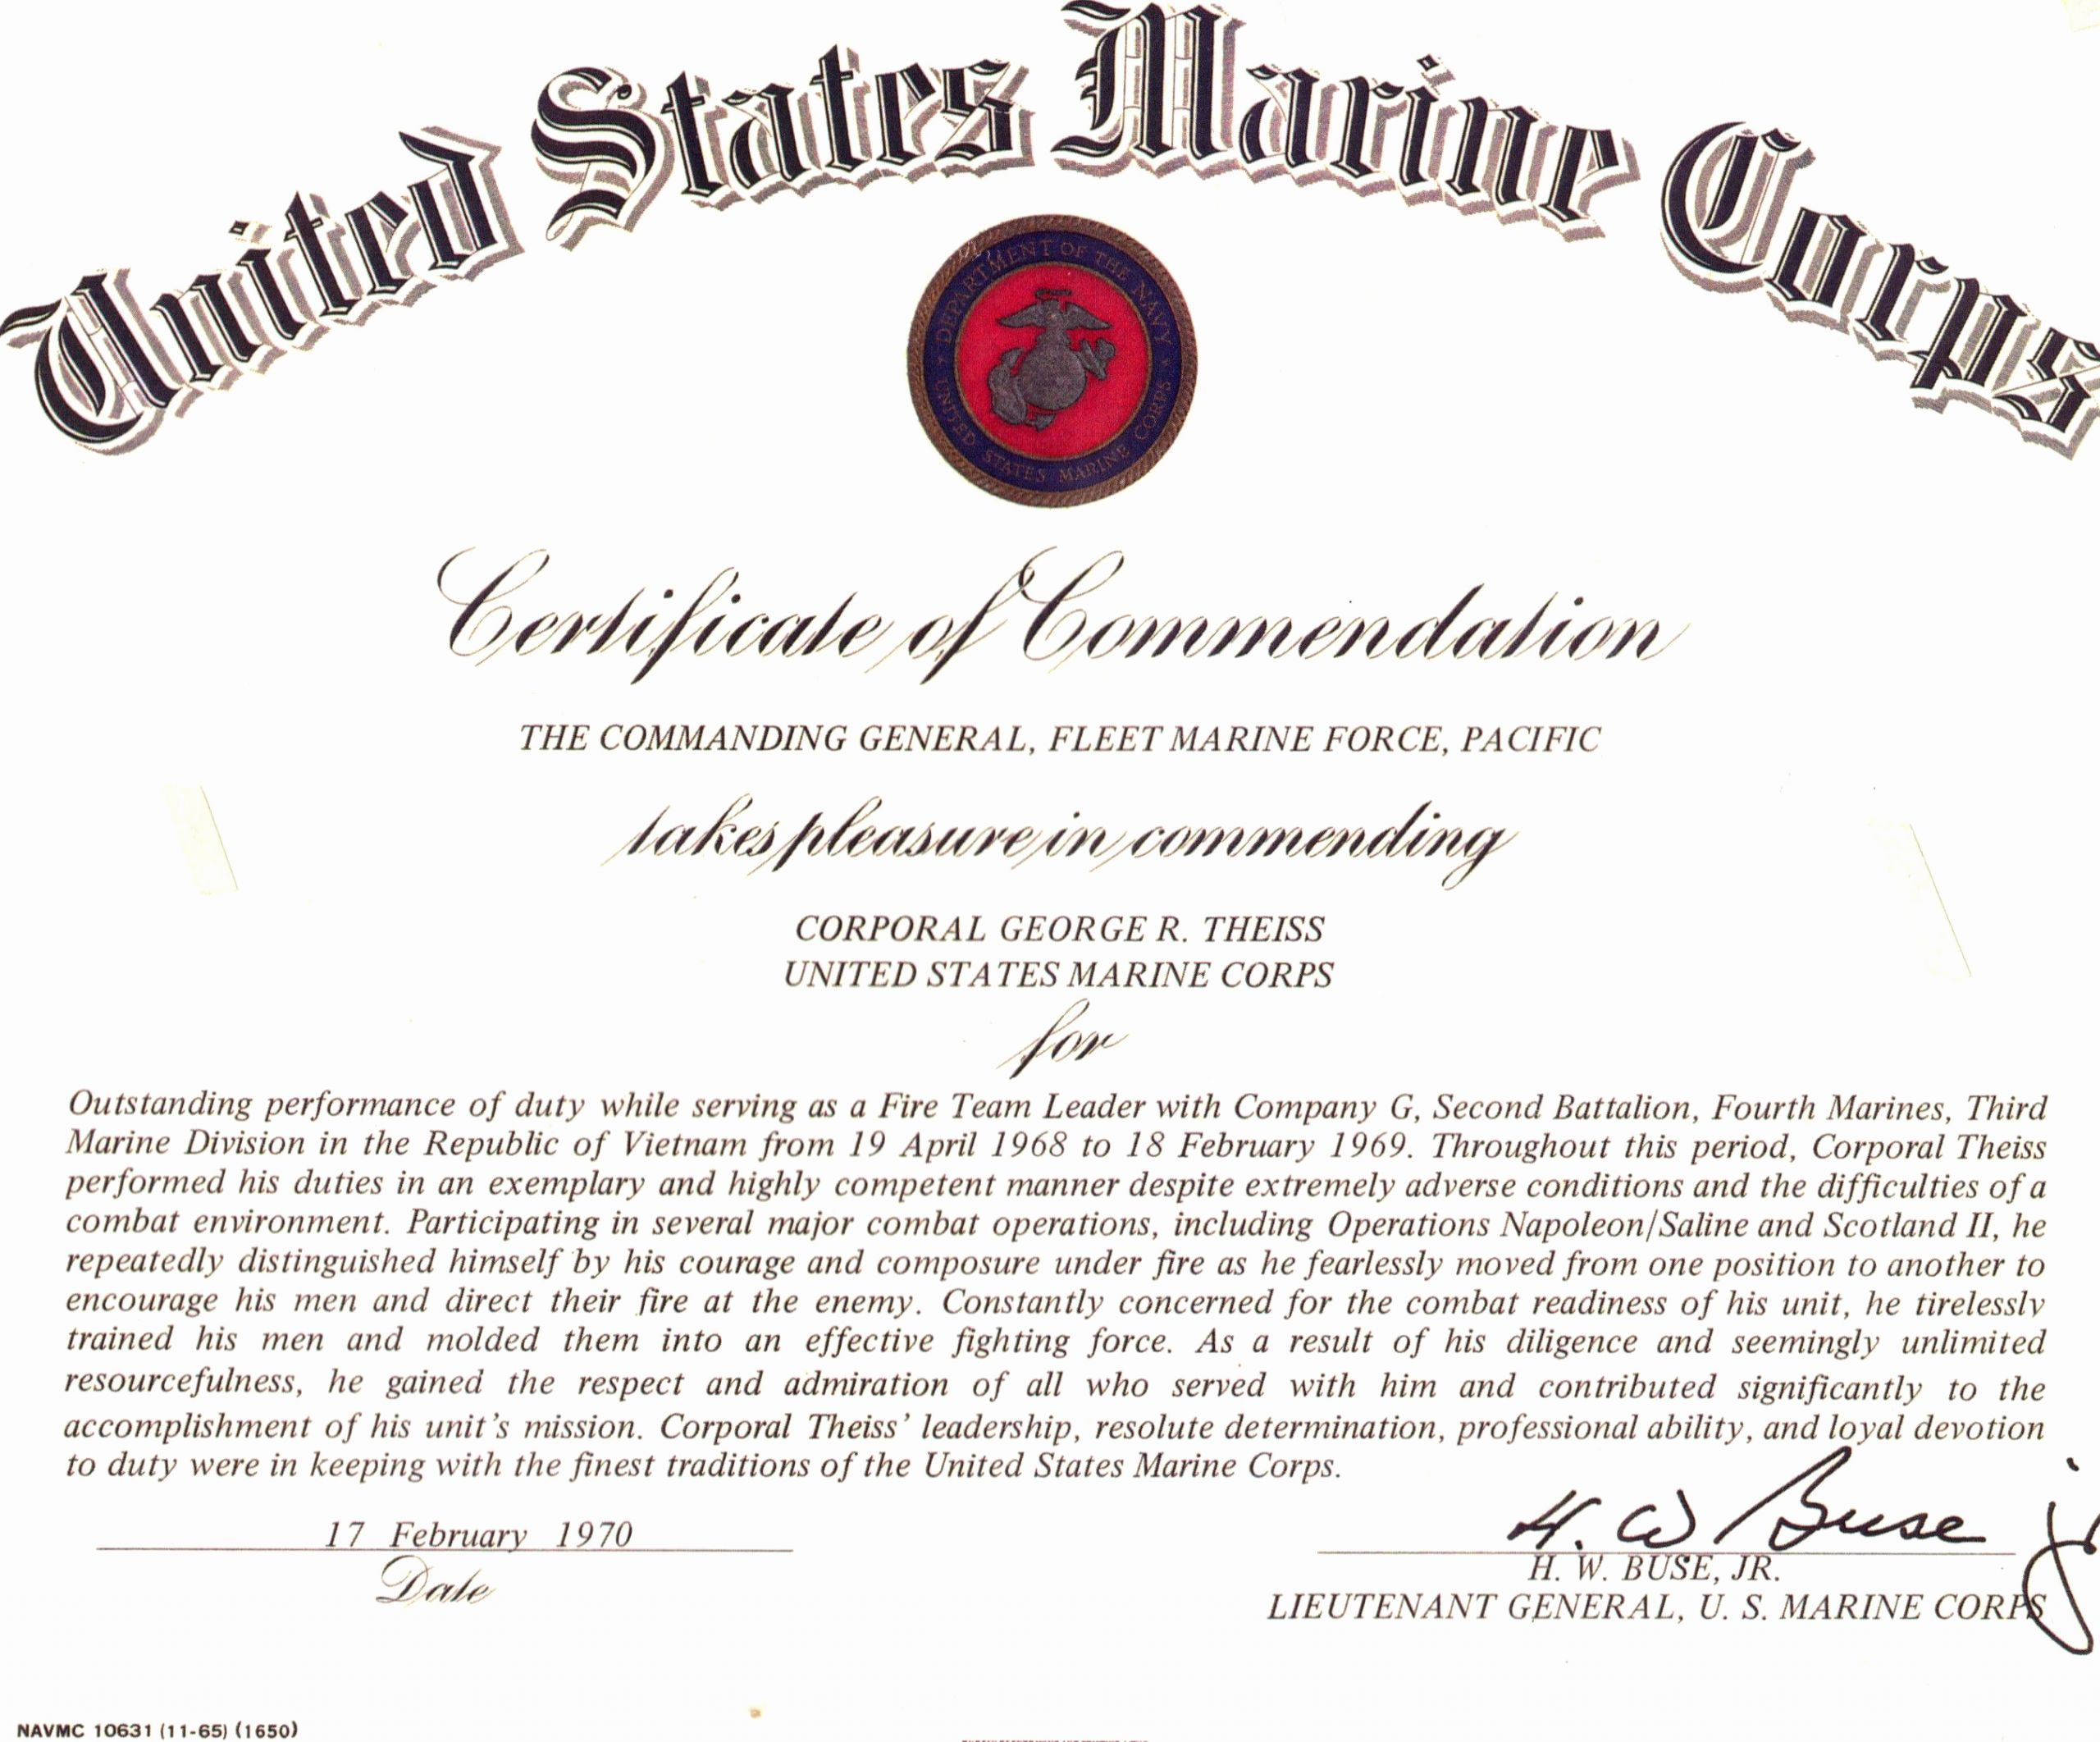 Firearms Training Certificate Template Best Of Usmc Certificate Of Mendation for George theiss